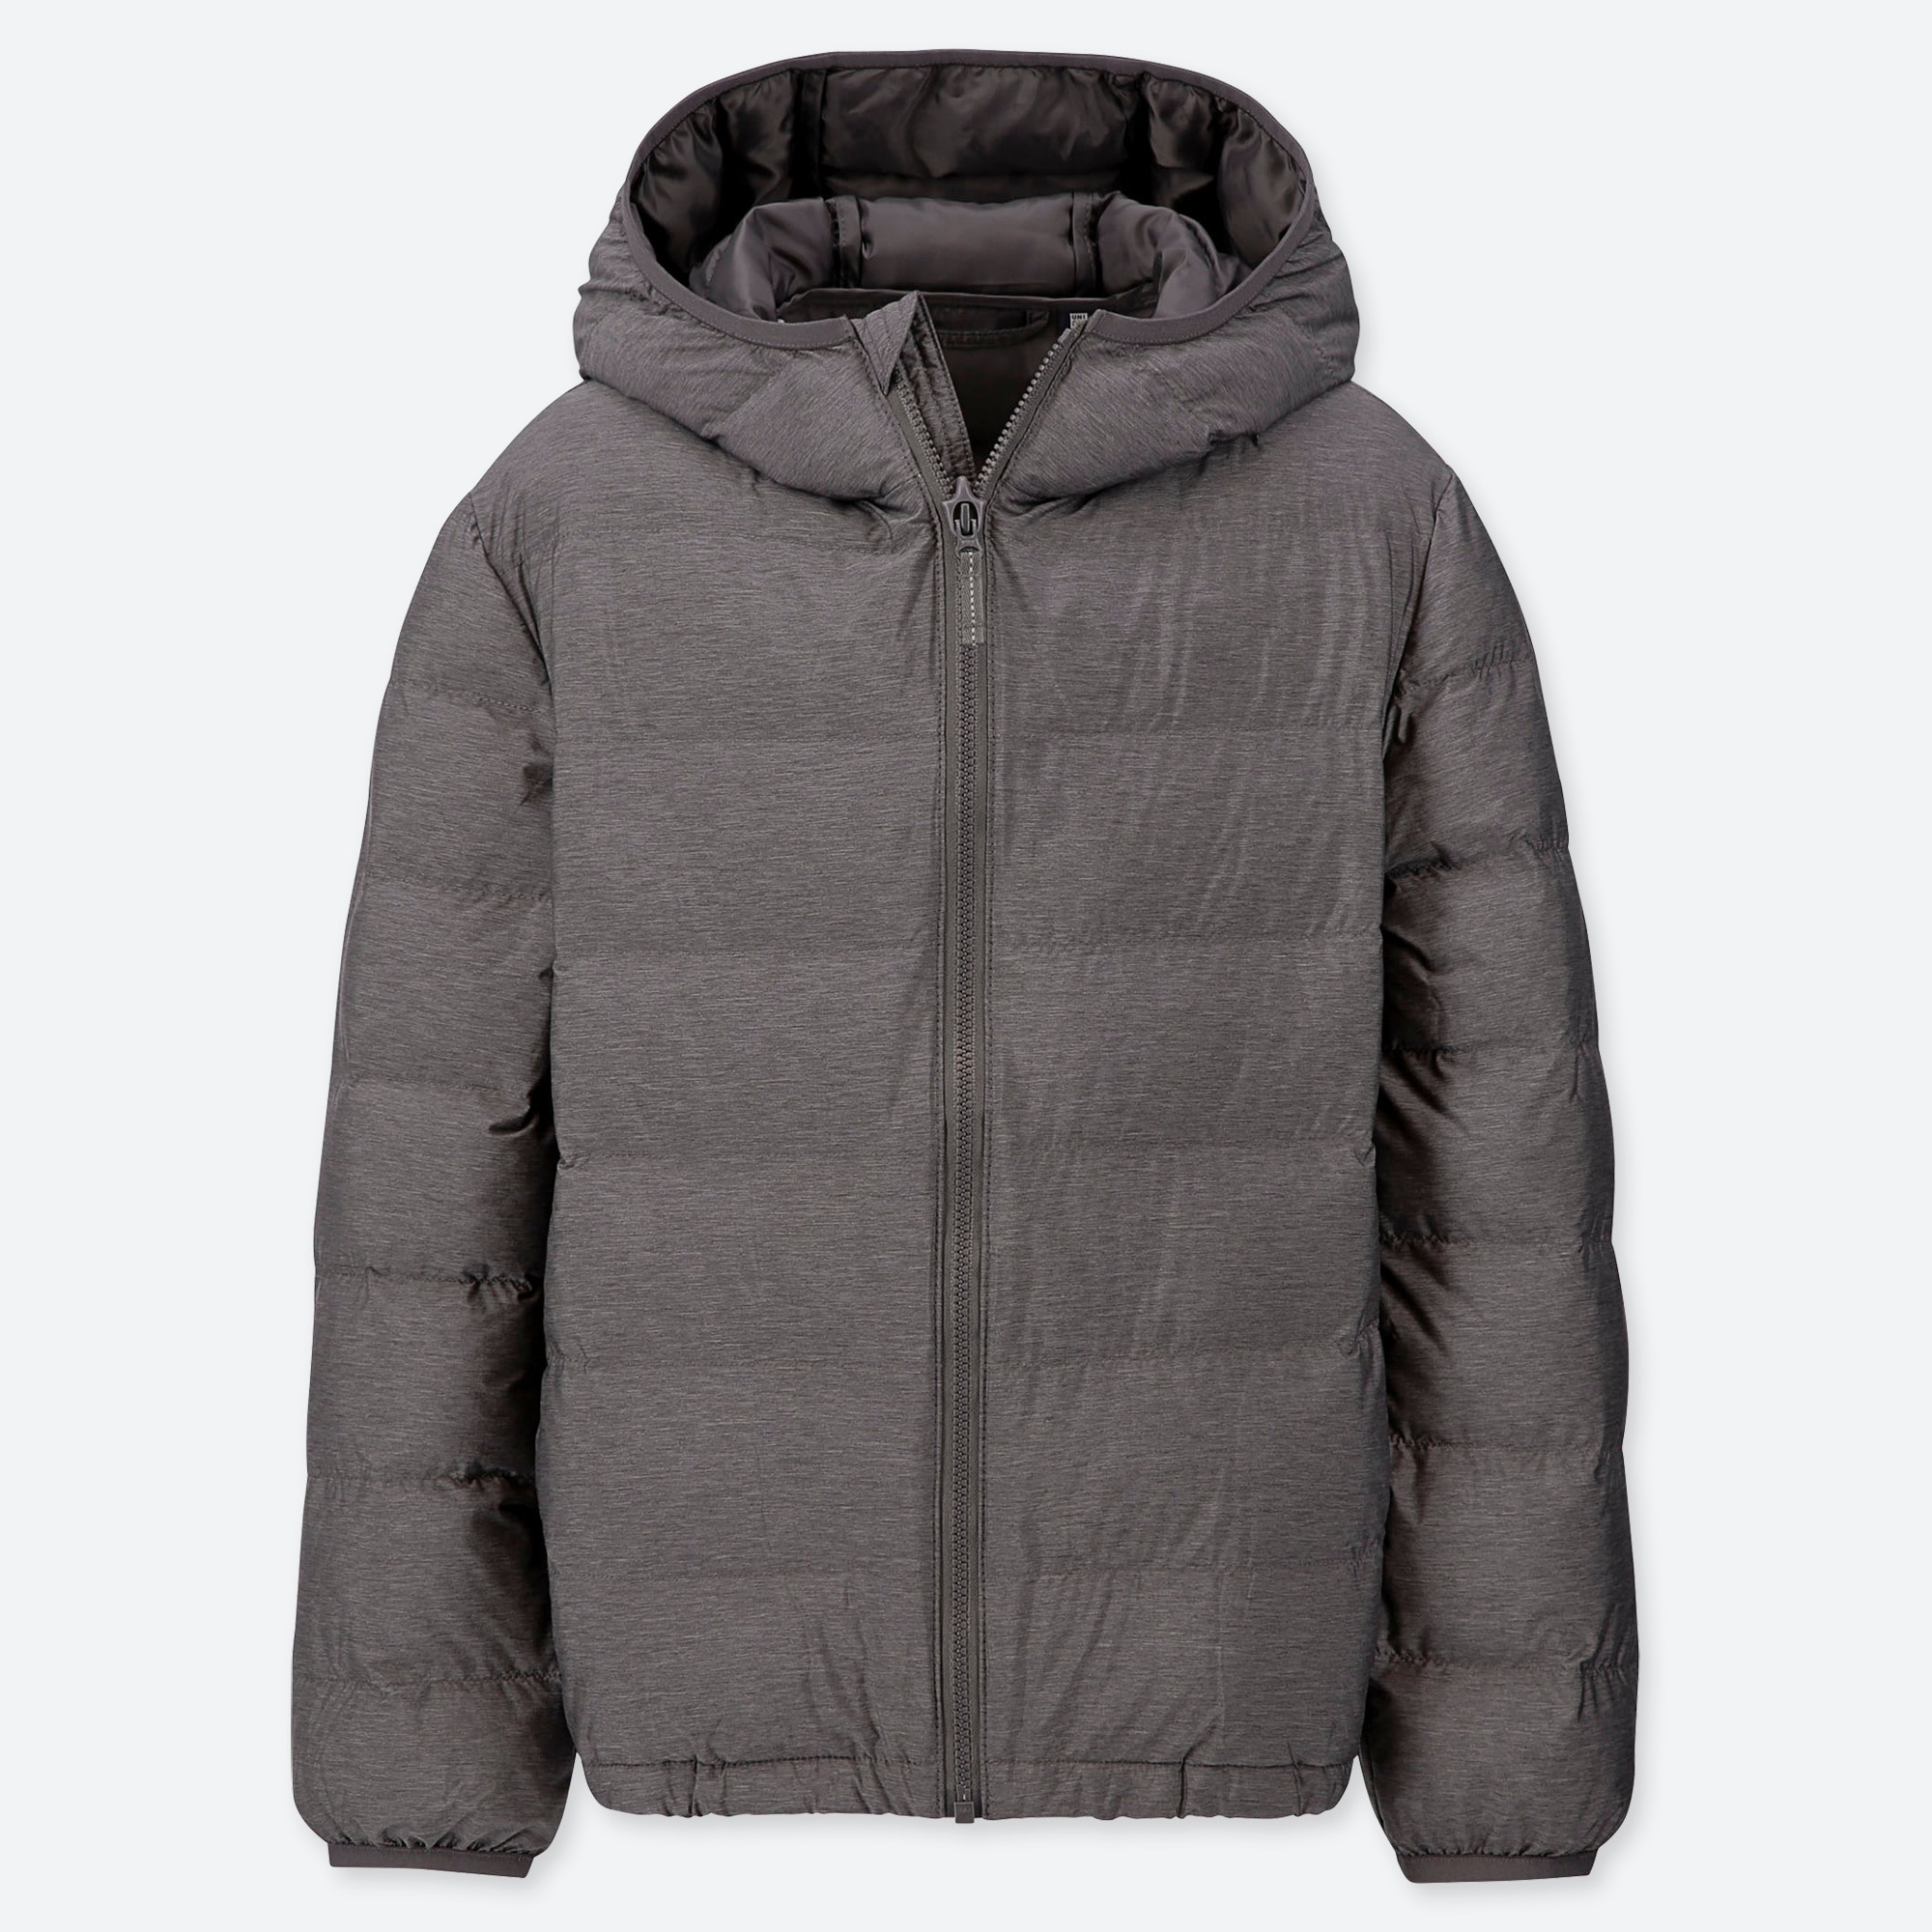 Uniqlo KIDS LIGHT WARM PADDED PARKA : Color - 08 Dark Gray, Size - Age 9-10 (421483)